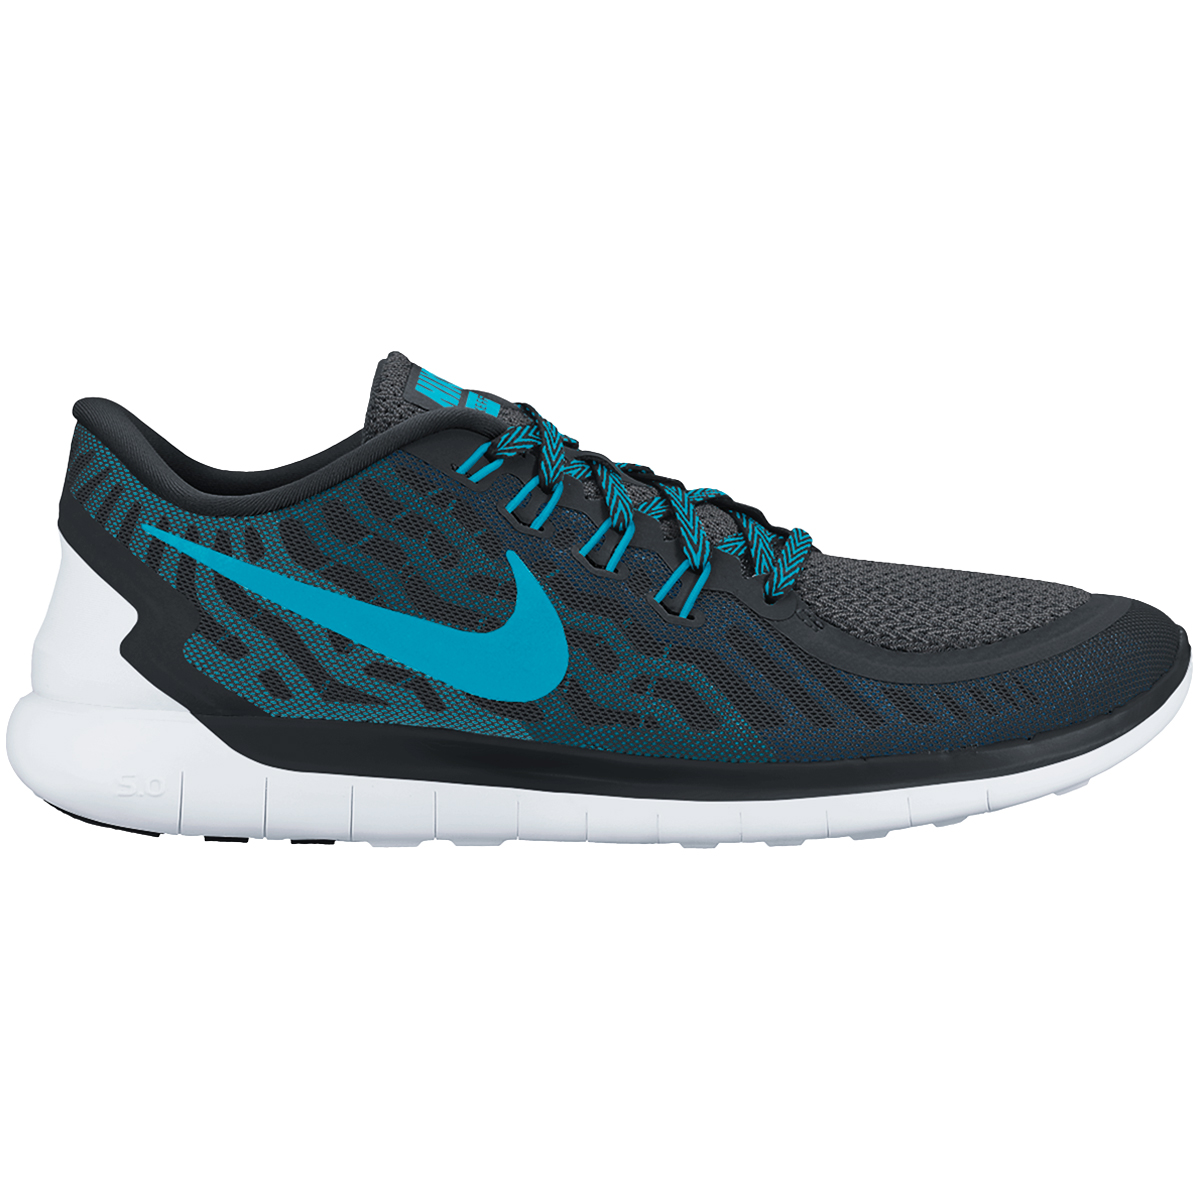 nike free 5 0 men 39 s training shoes black dark electric. Black Bedroom Furniture Sets. Home Design Ideas